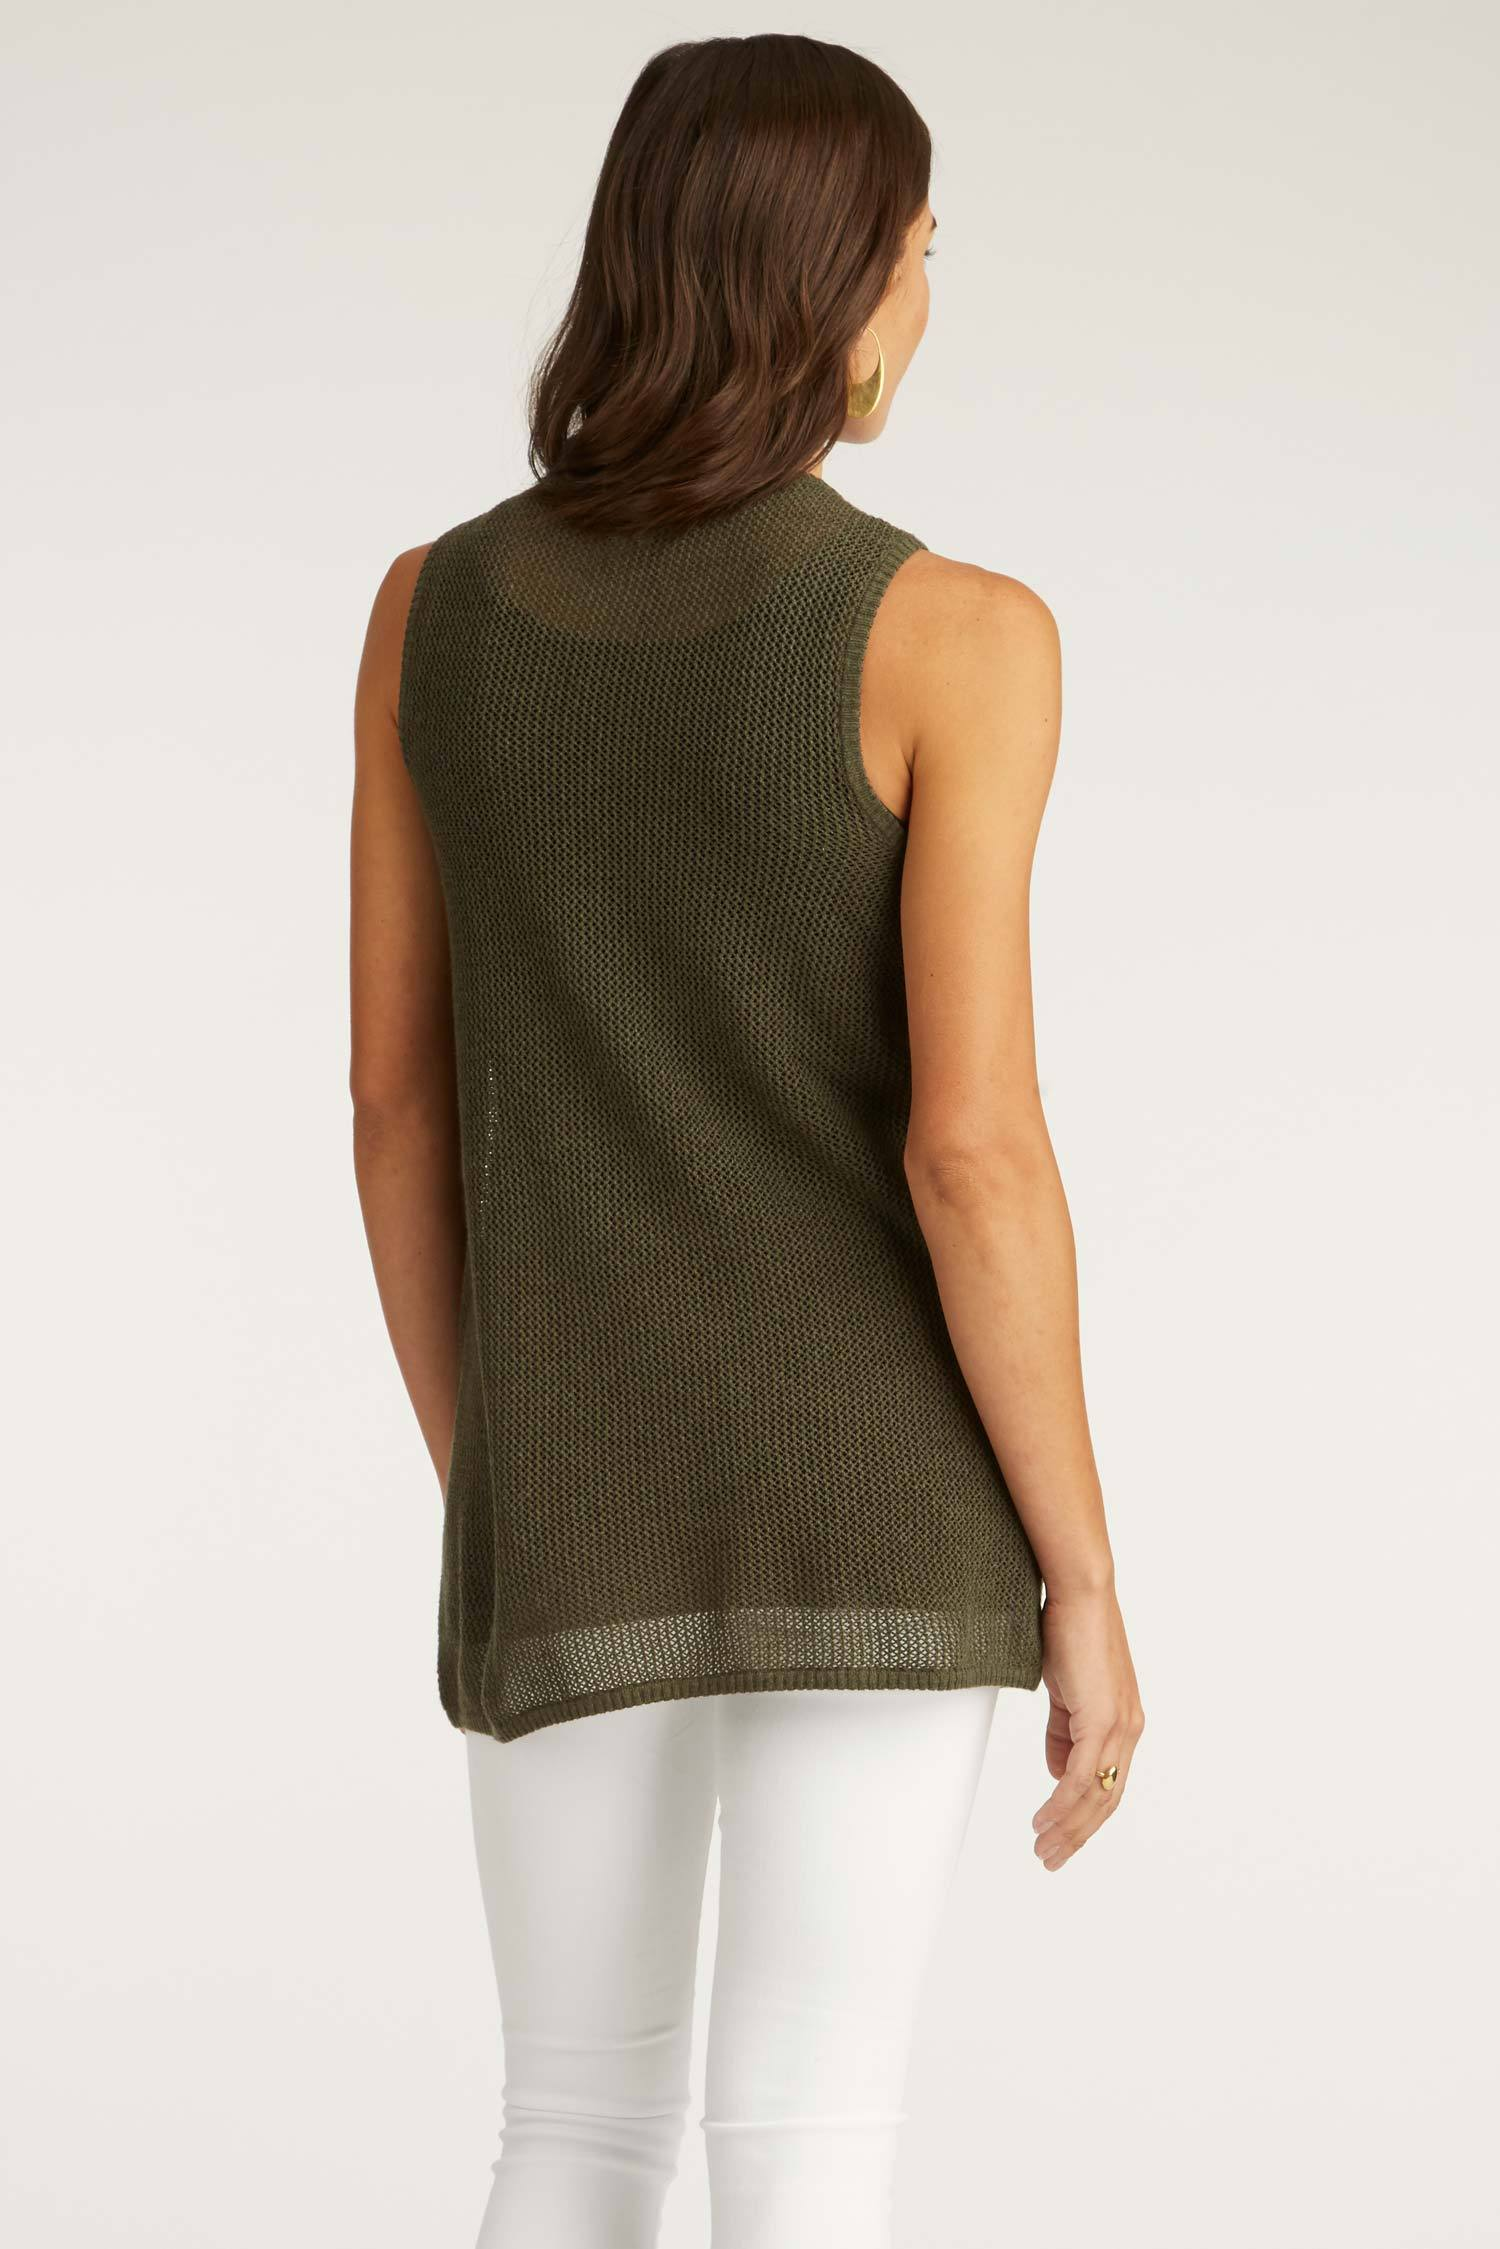 Womens Organic Cotton Top | Mesh Tank | Moss Green | Indigenous